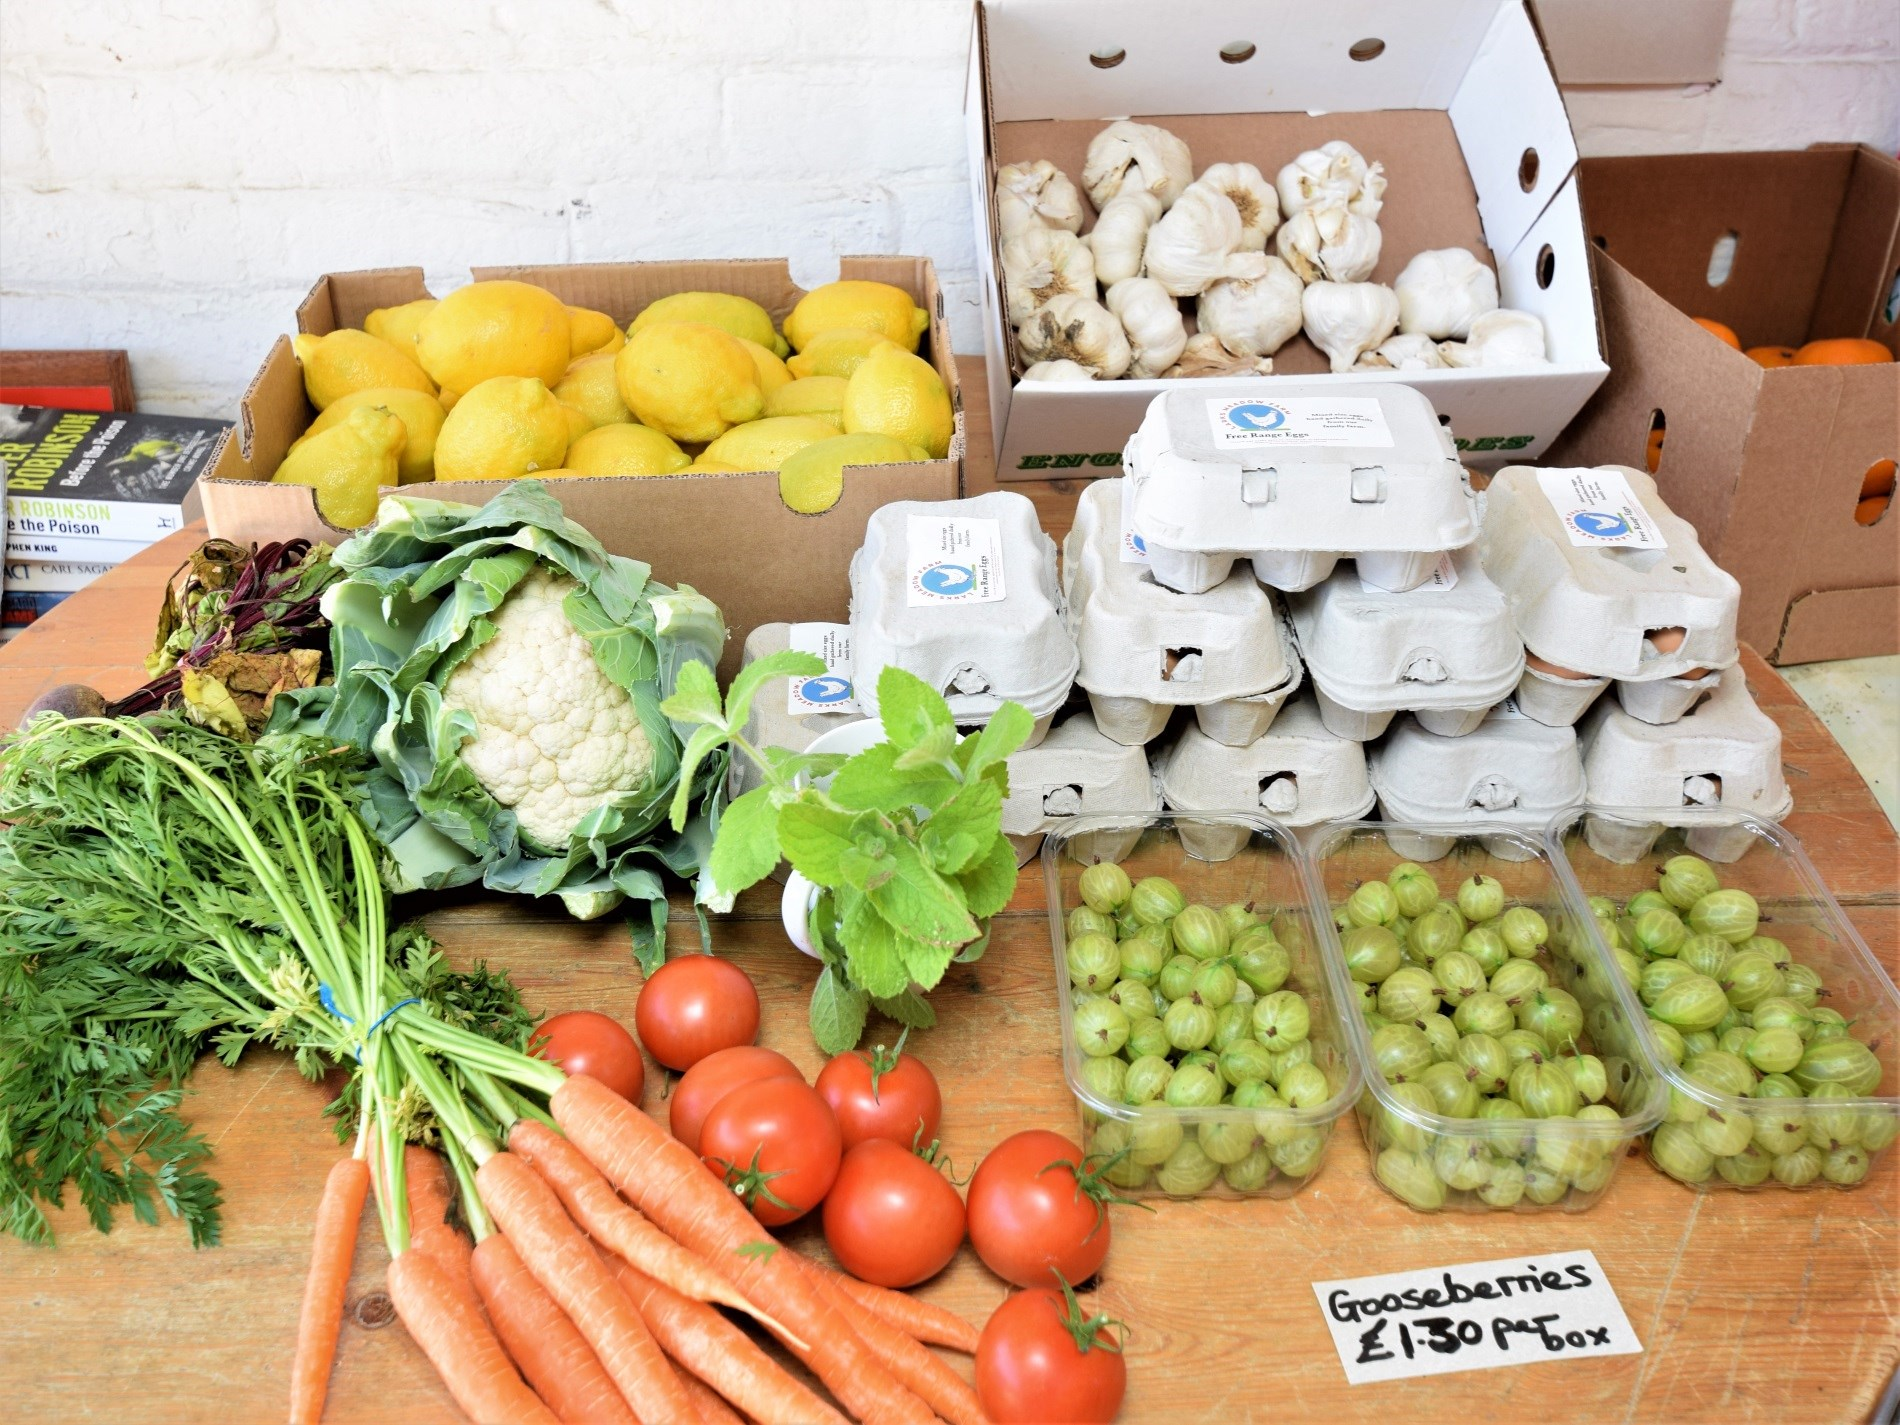 Enjoy choosing what to cook from the farm shop